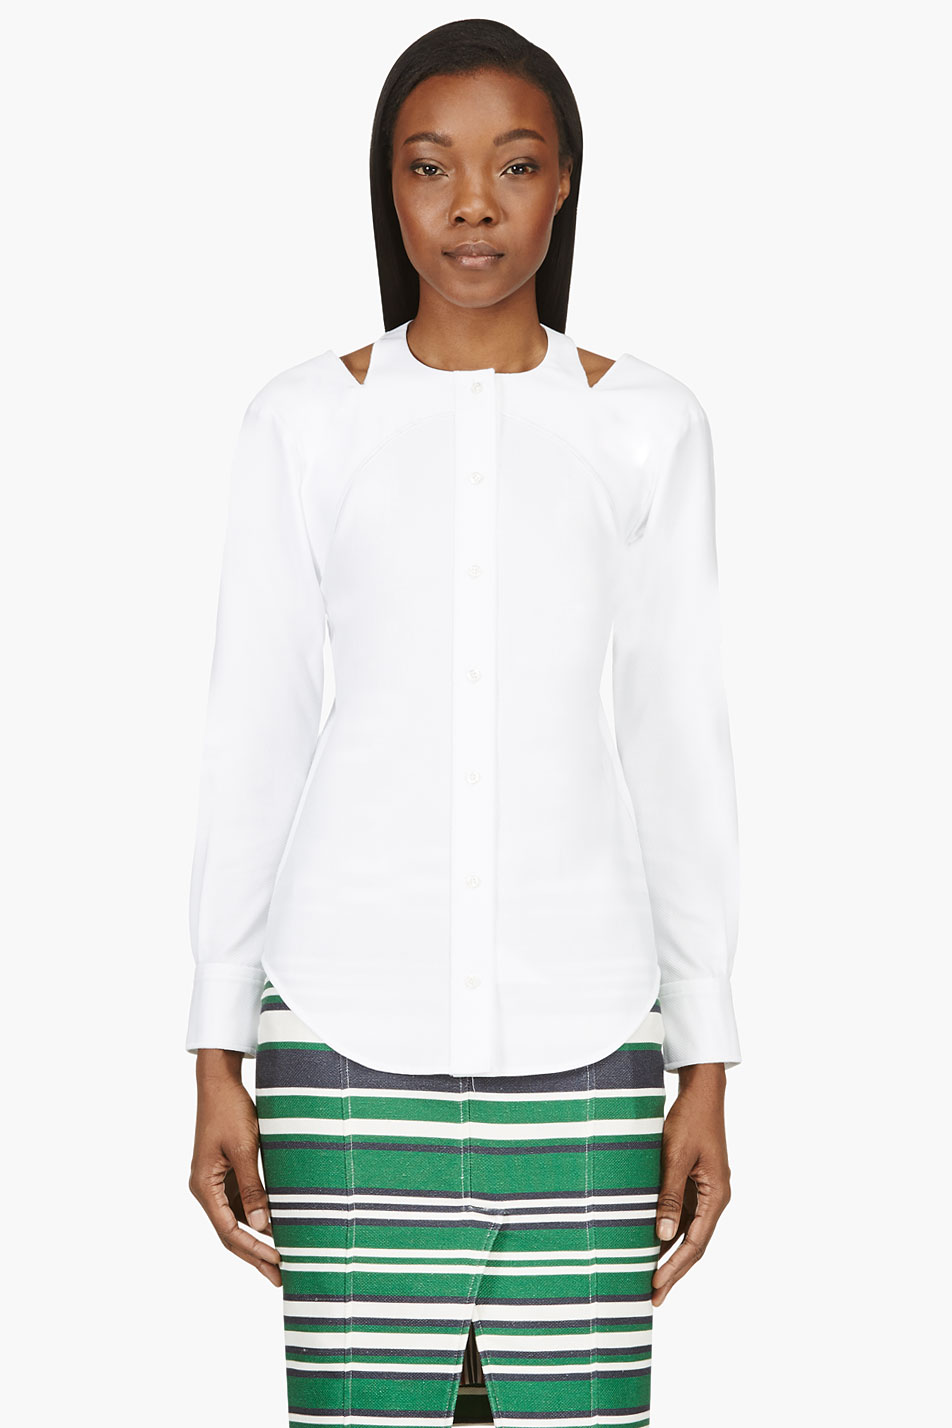 Thom browne white inside out halter tuxedo shirt for Thom browne white shirt